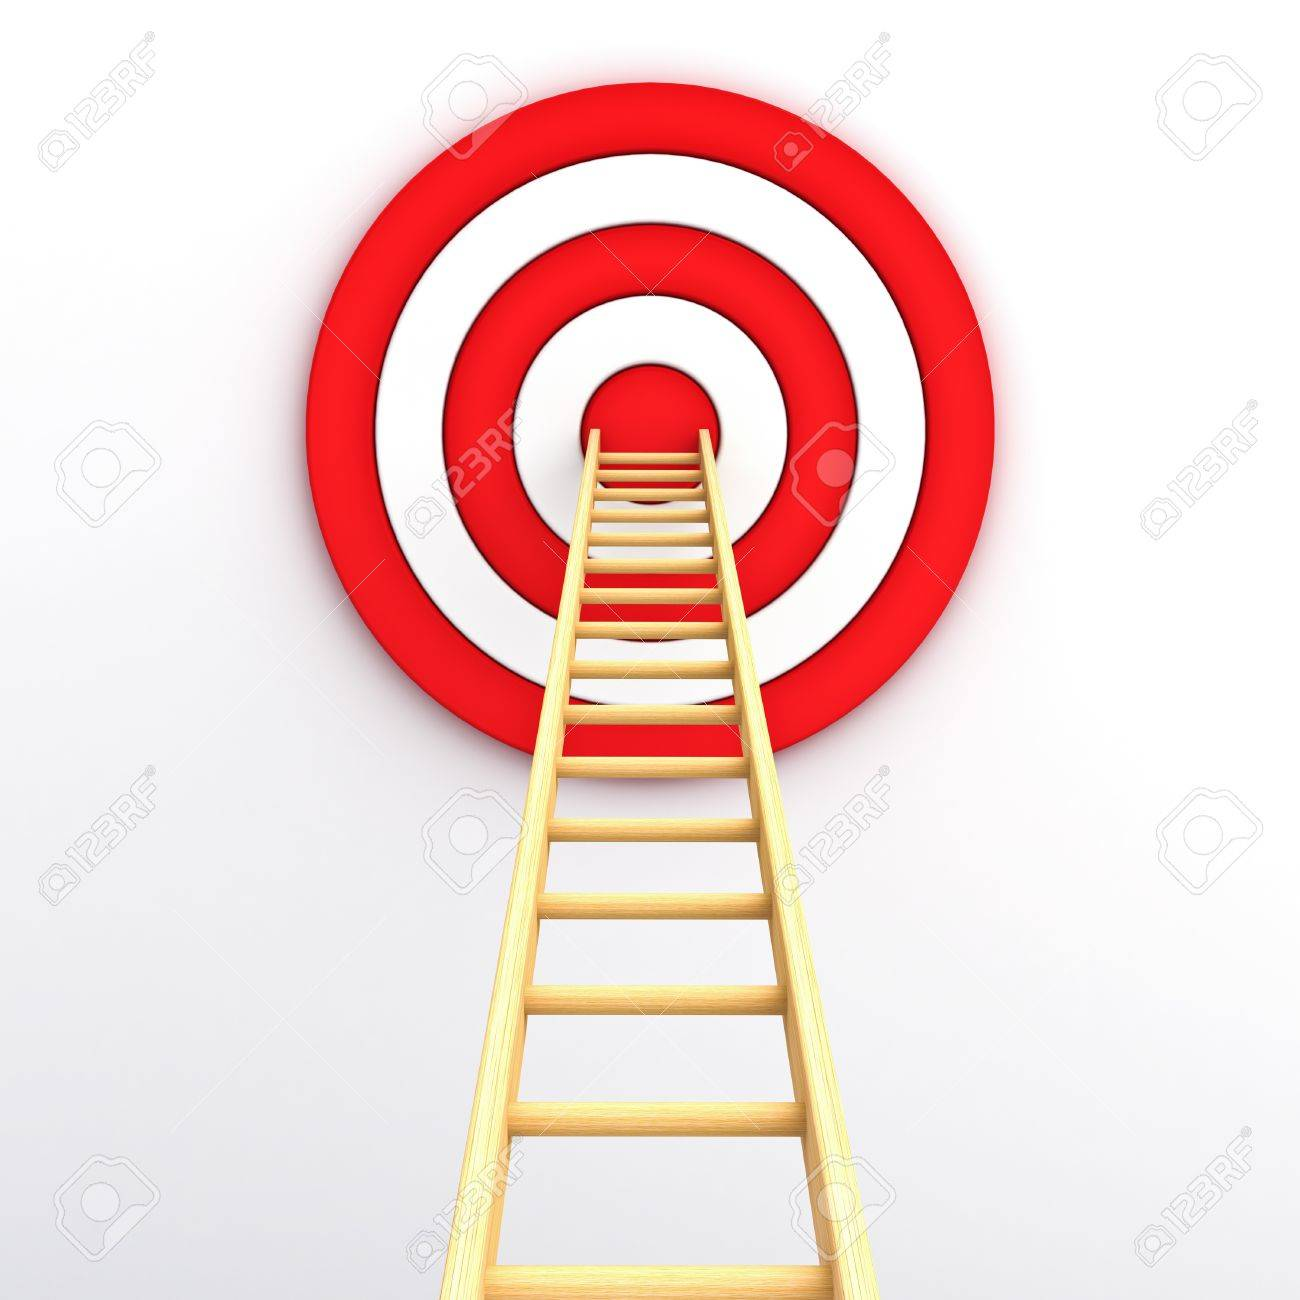 Ladder to the middle of the red target on white background Stock Photo - 15710561